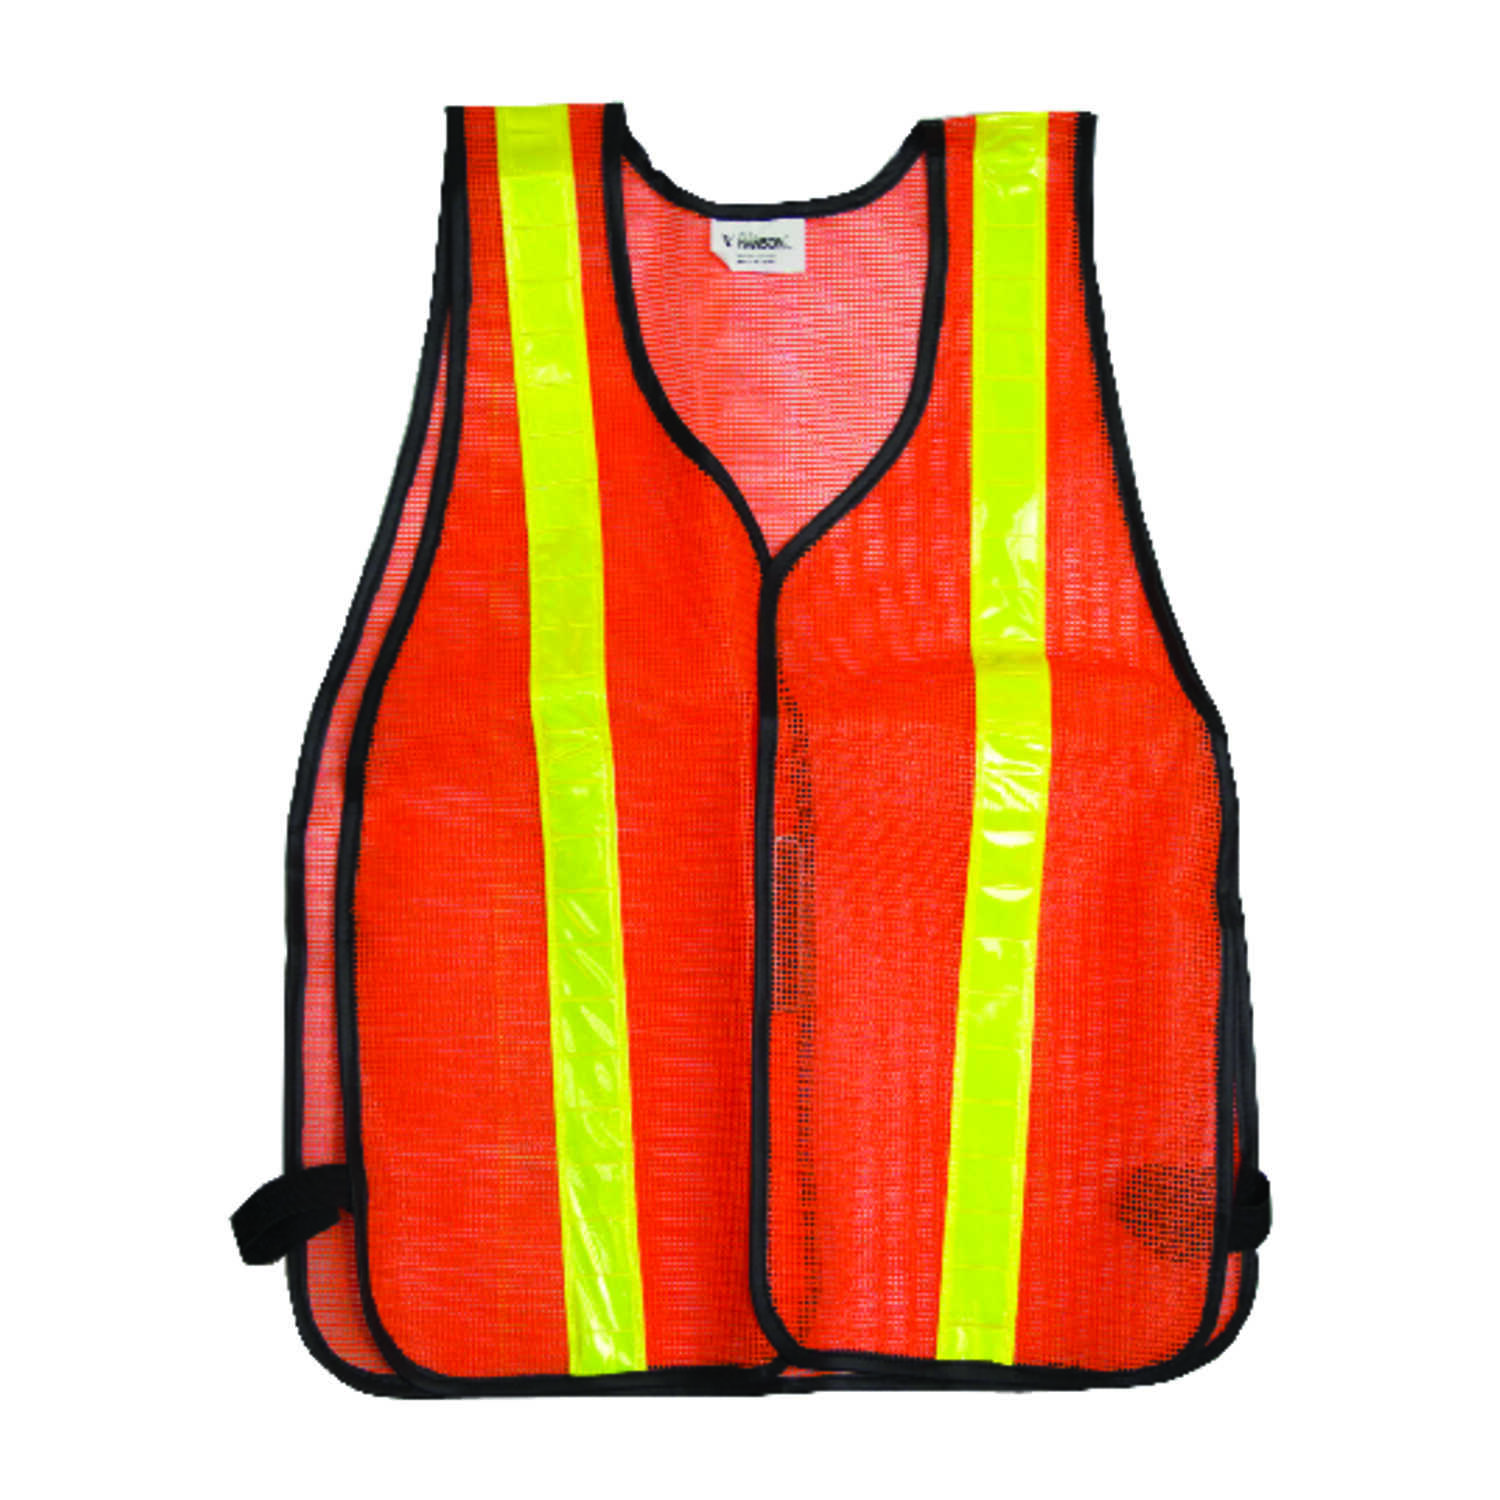 CH Hanson  Polyester Mesh  Reflective Safety Vest with Reflective Stripe  Orange  One Size Fits All